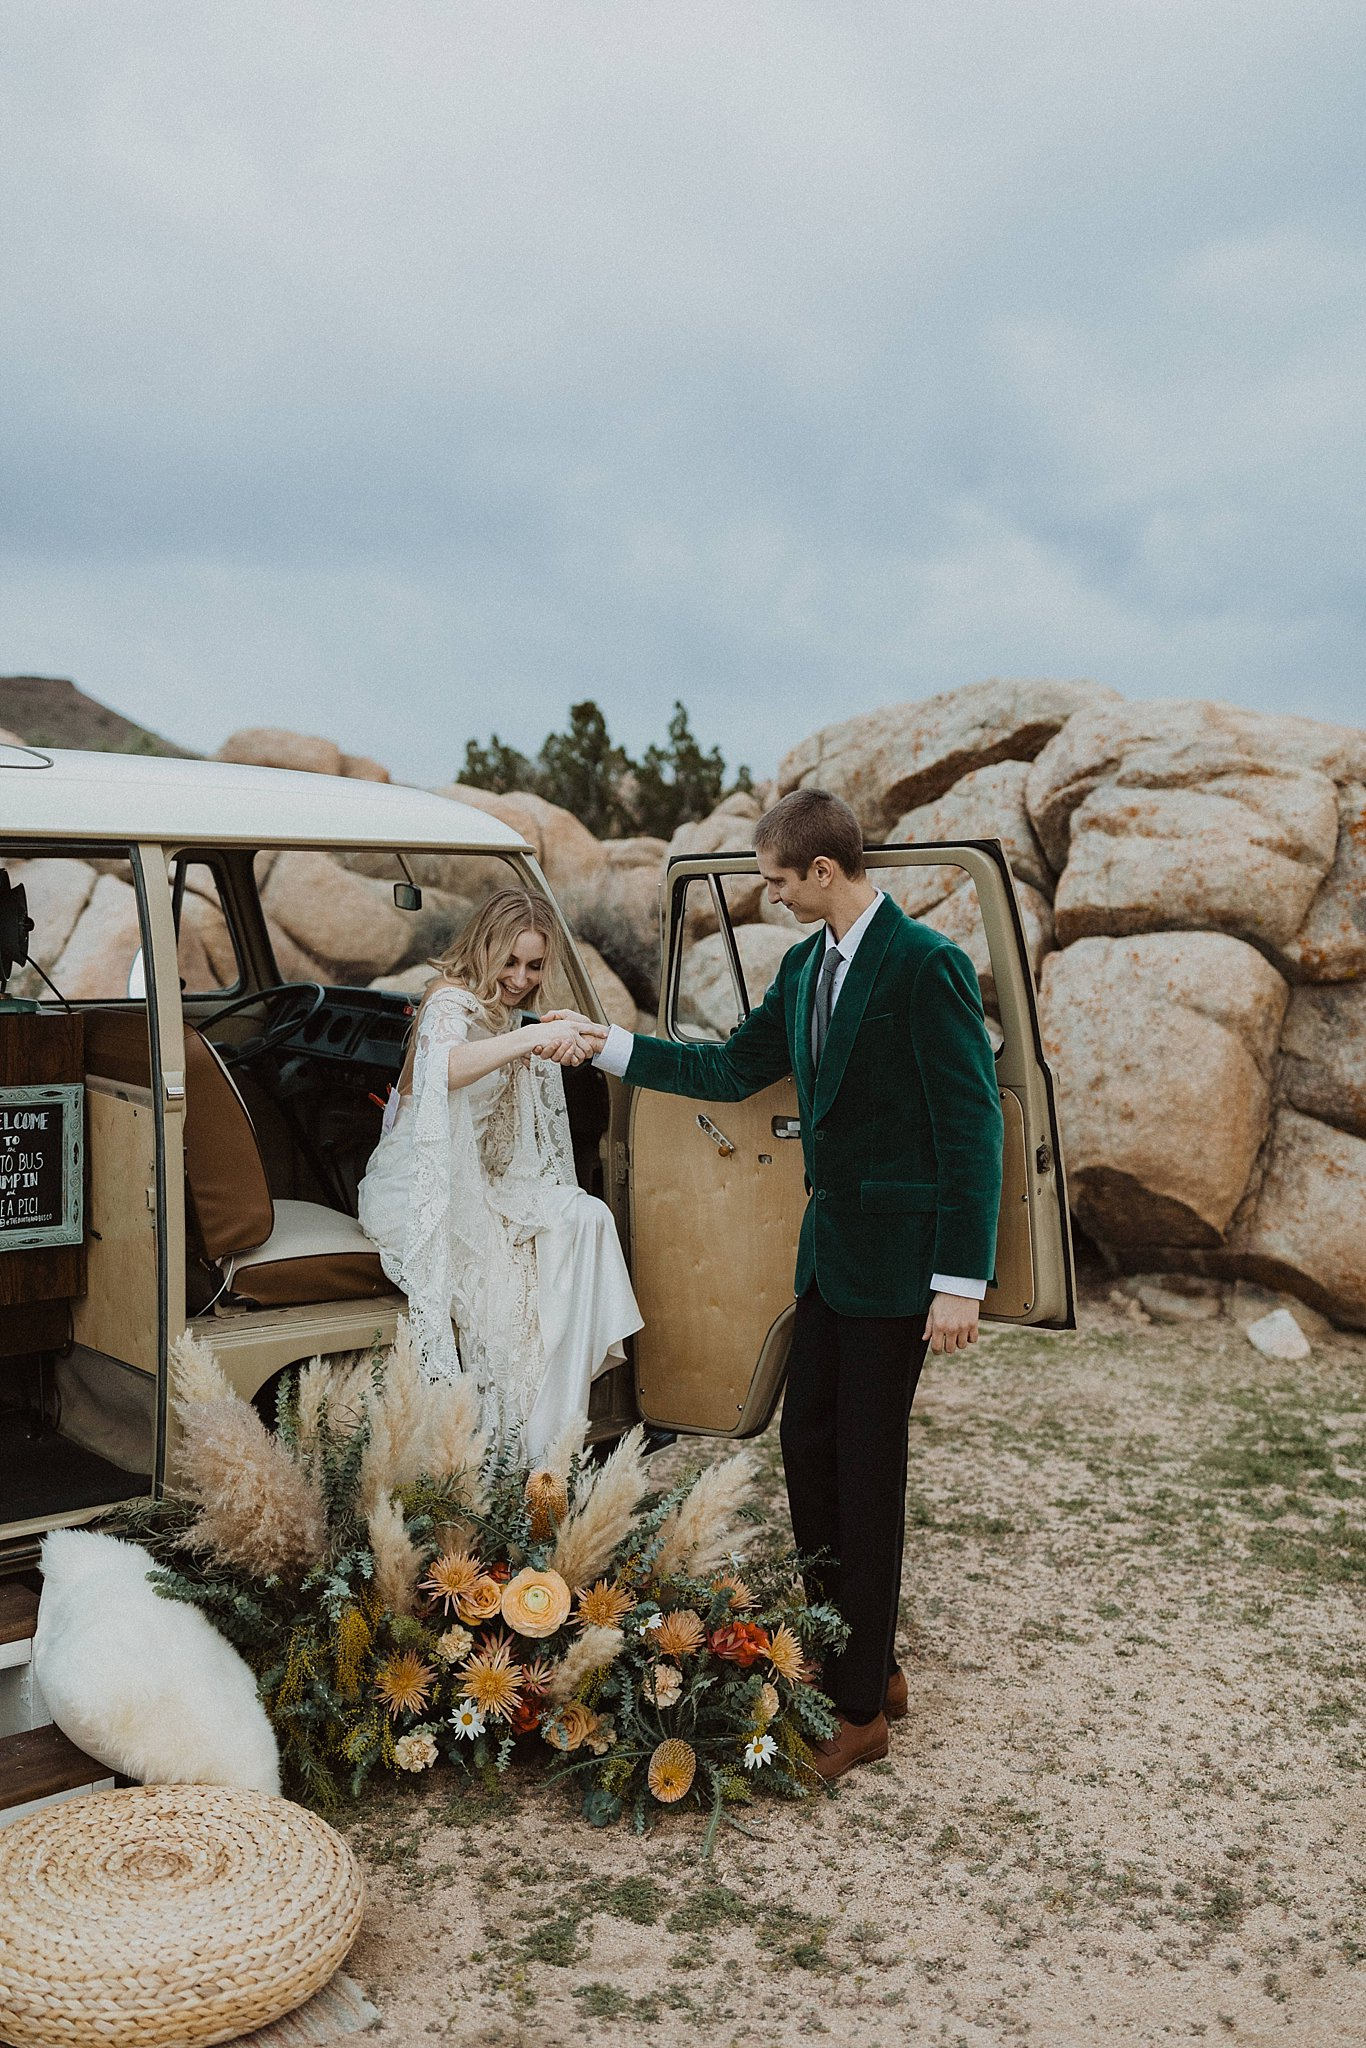 Meg's Marvels Photography - Joshua Tree Elopement California Wedding_0185.jpg